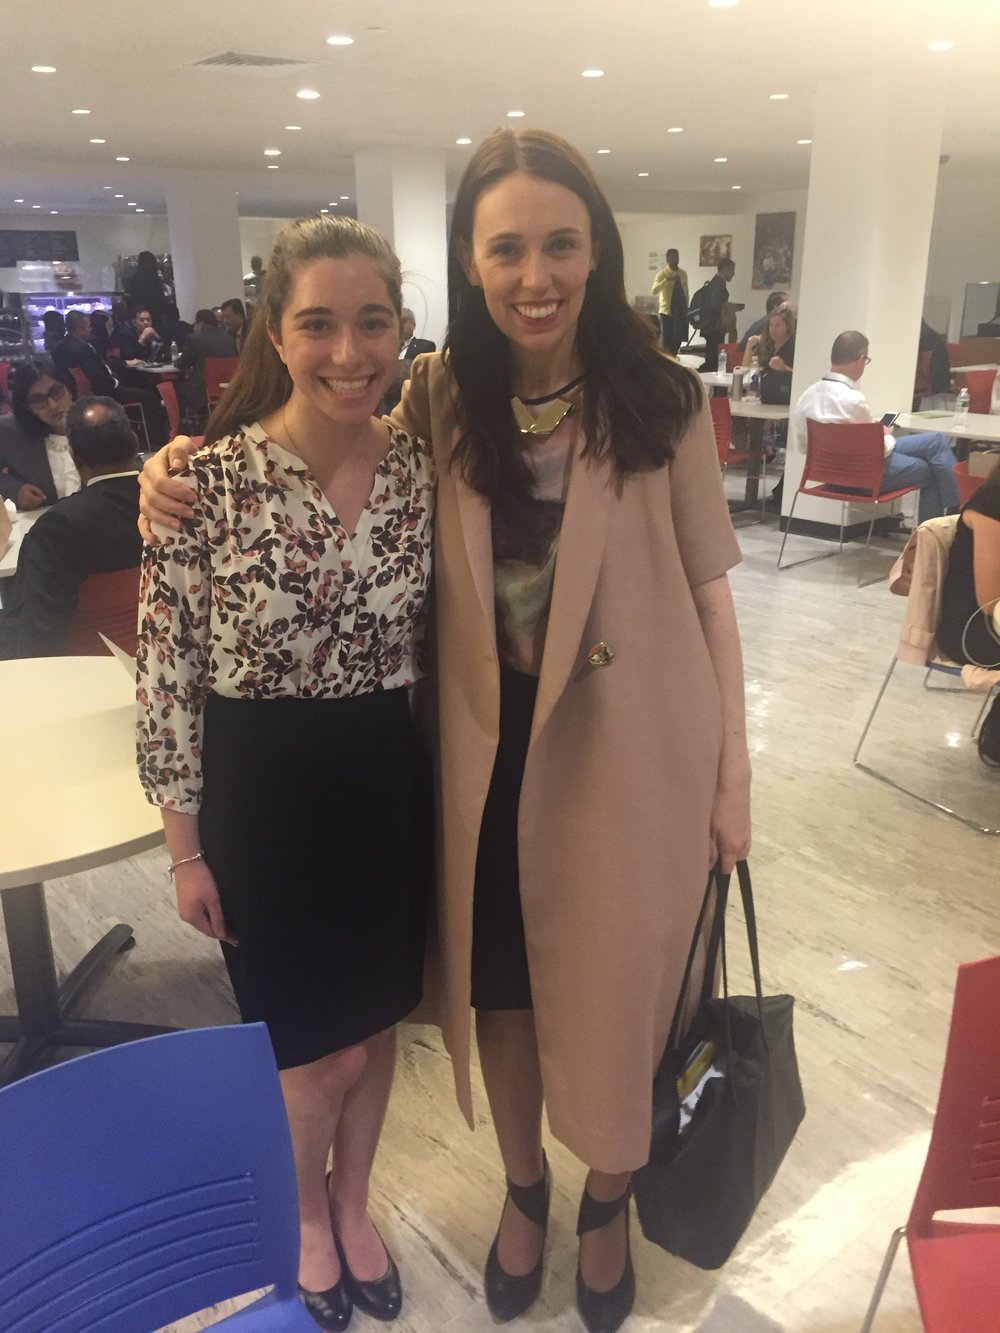 Sienna Nordquist, a Project Officer at SDSN Youth, had the good fortune of seeing Prime Minister Jacinda Ardern in the UN cafeteria. PM Ardern was kind enough to take a picture with Sienna!